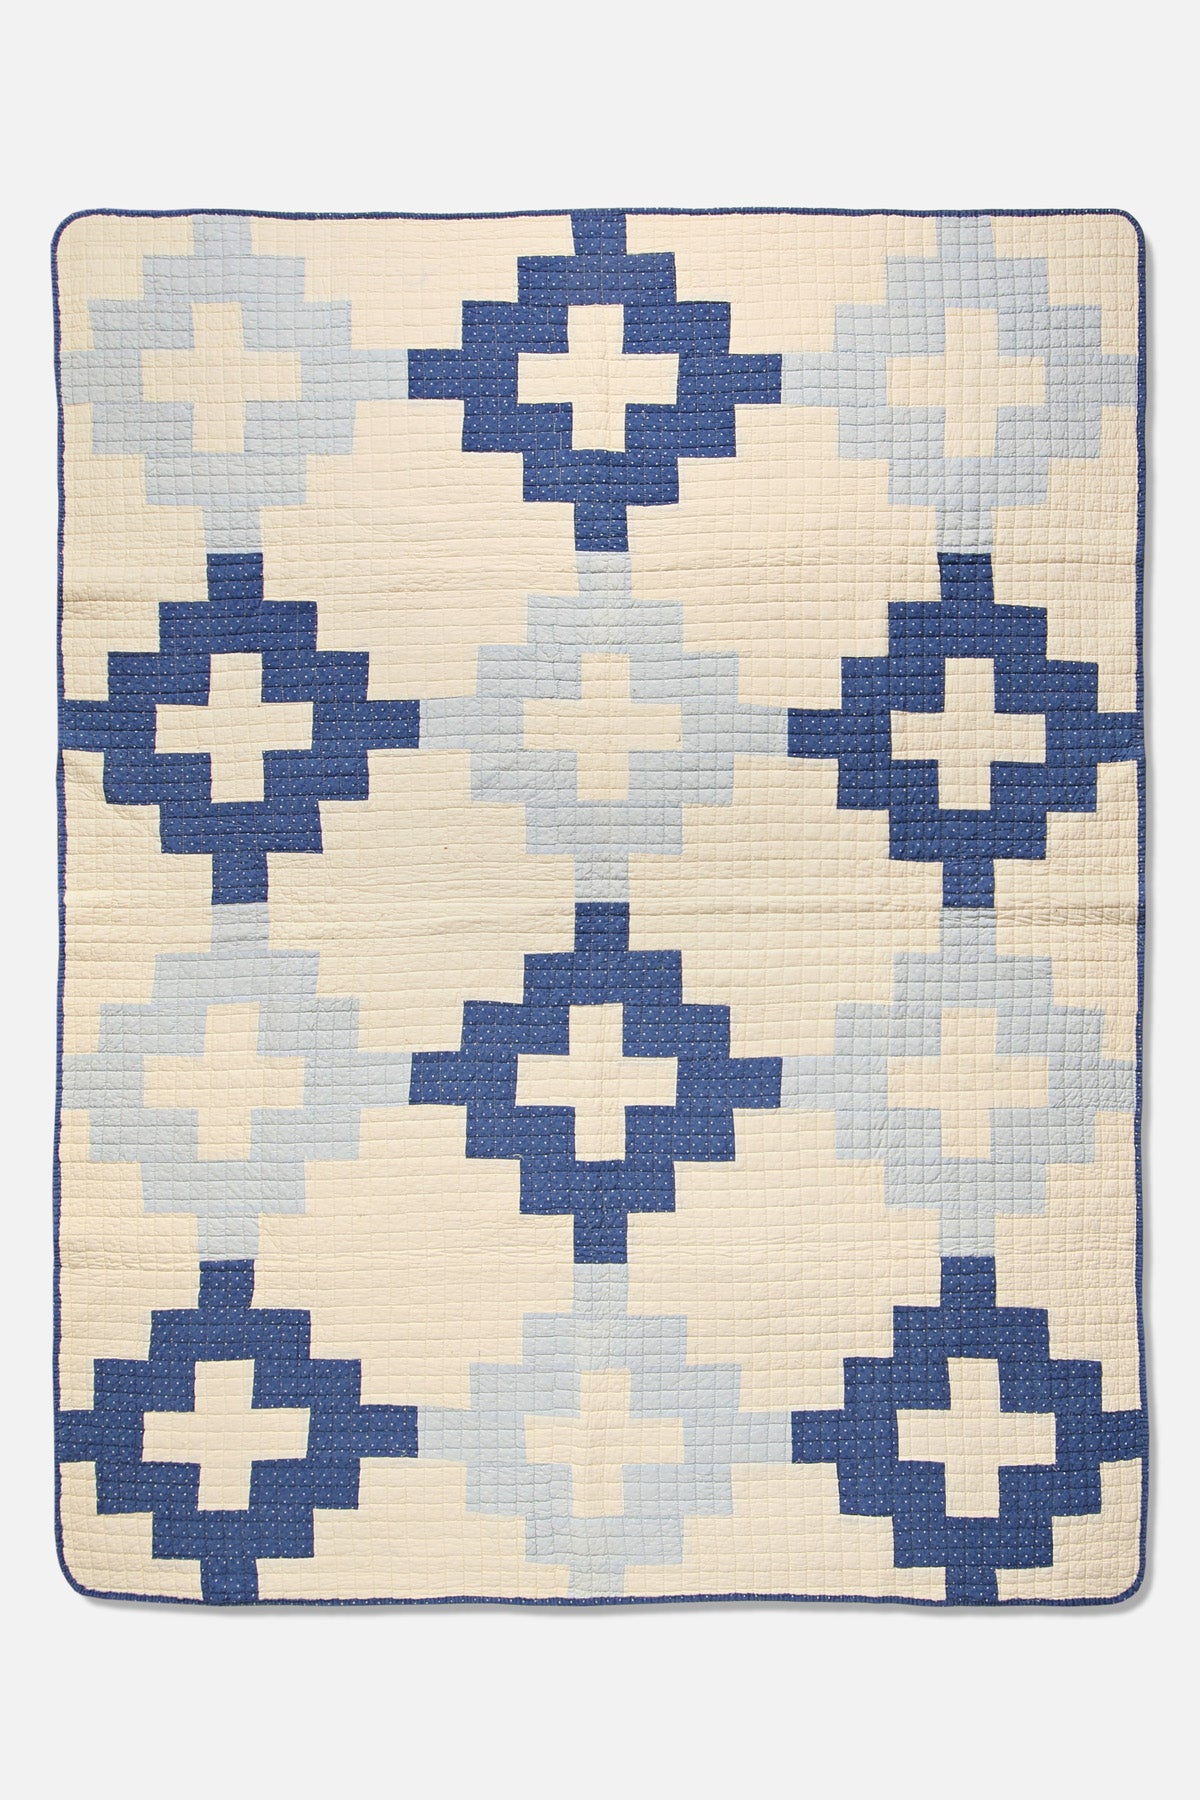 BasShu Patchwork Quilt in Indigo - Fortune Goods